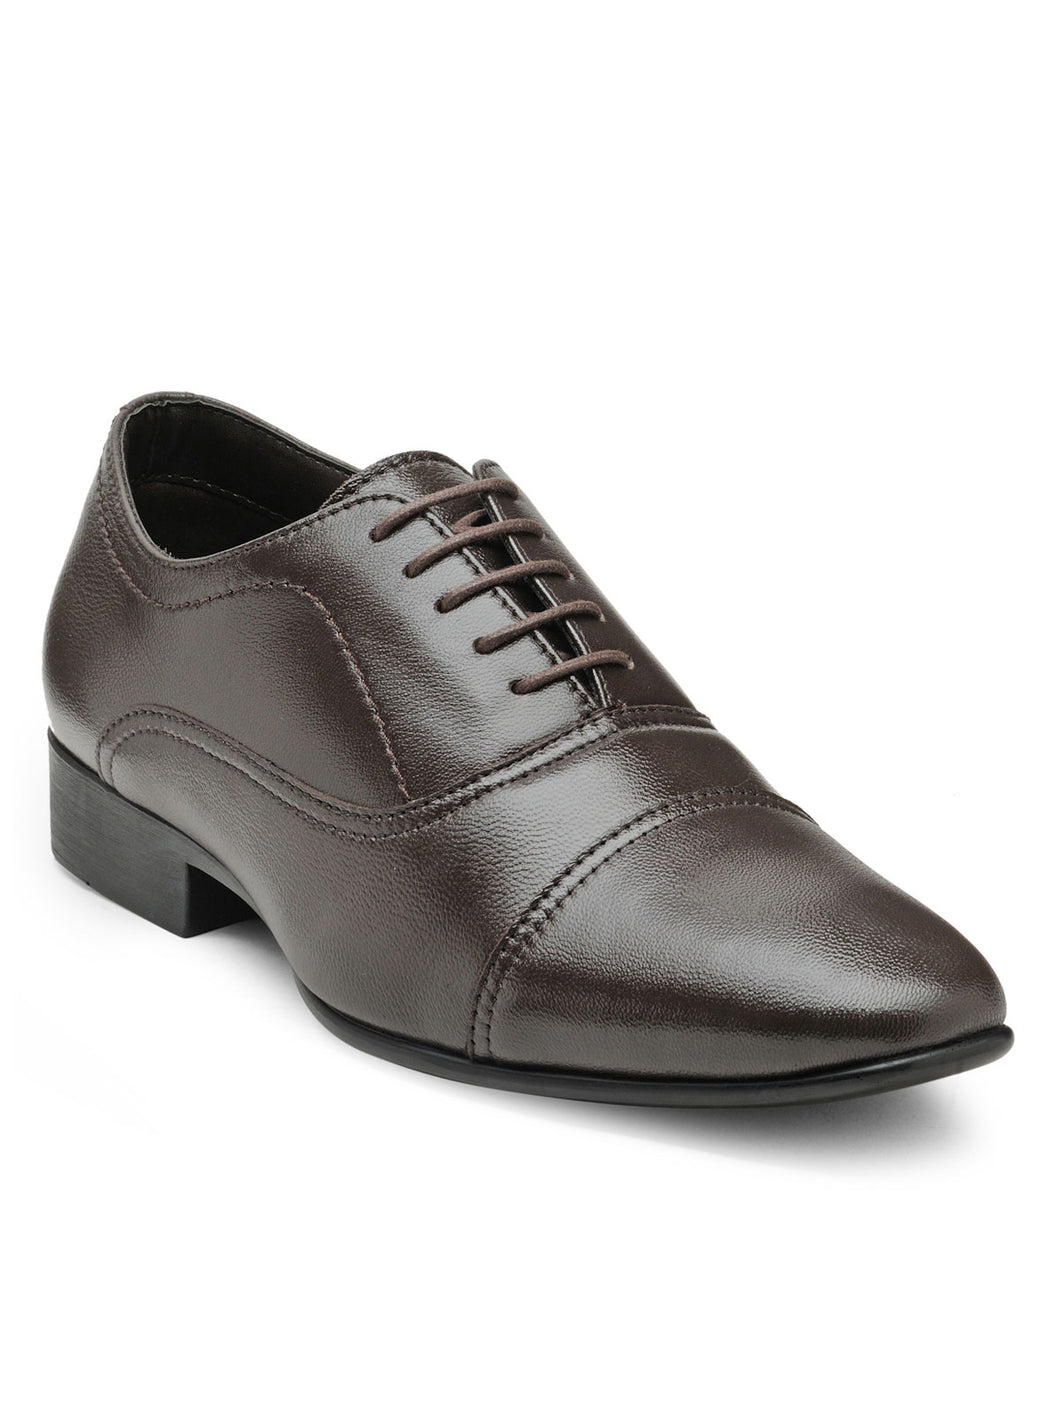 Teakwood Leather Men's Brown Derby Shoes